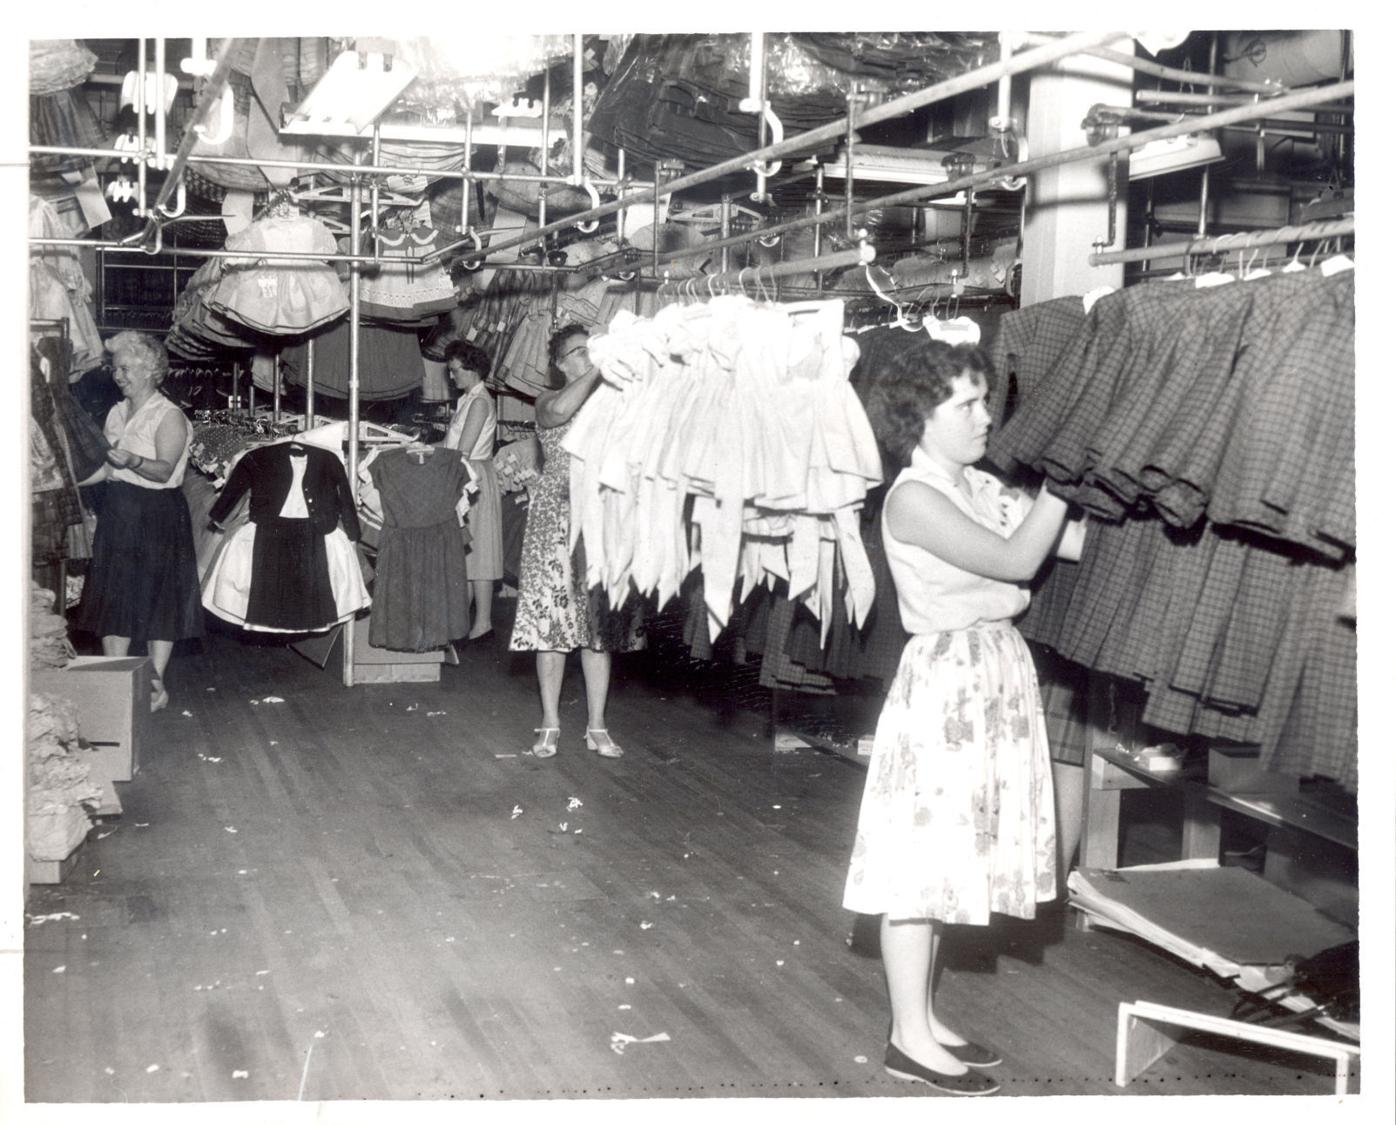 Inspection department on the first floor where girls' dresses are given final approval before shipment. By Sept. 5, 1961, the firm was expected to enlarge their payroll to 205 people. TIMES FILE